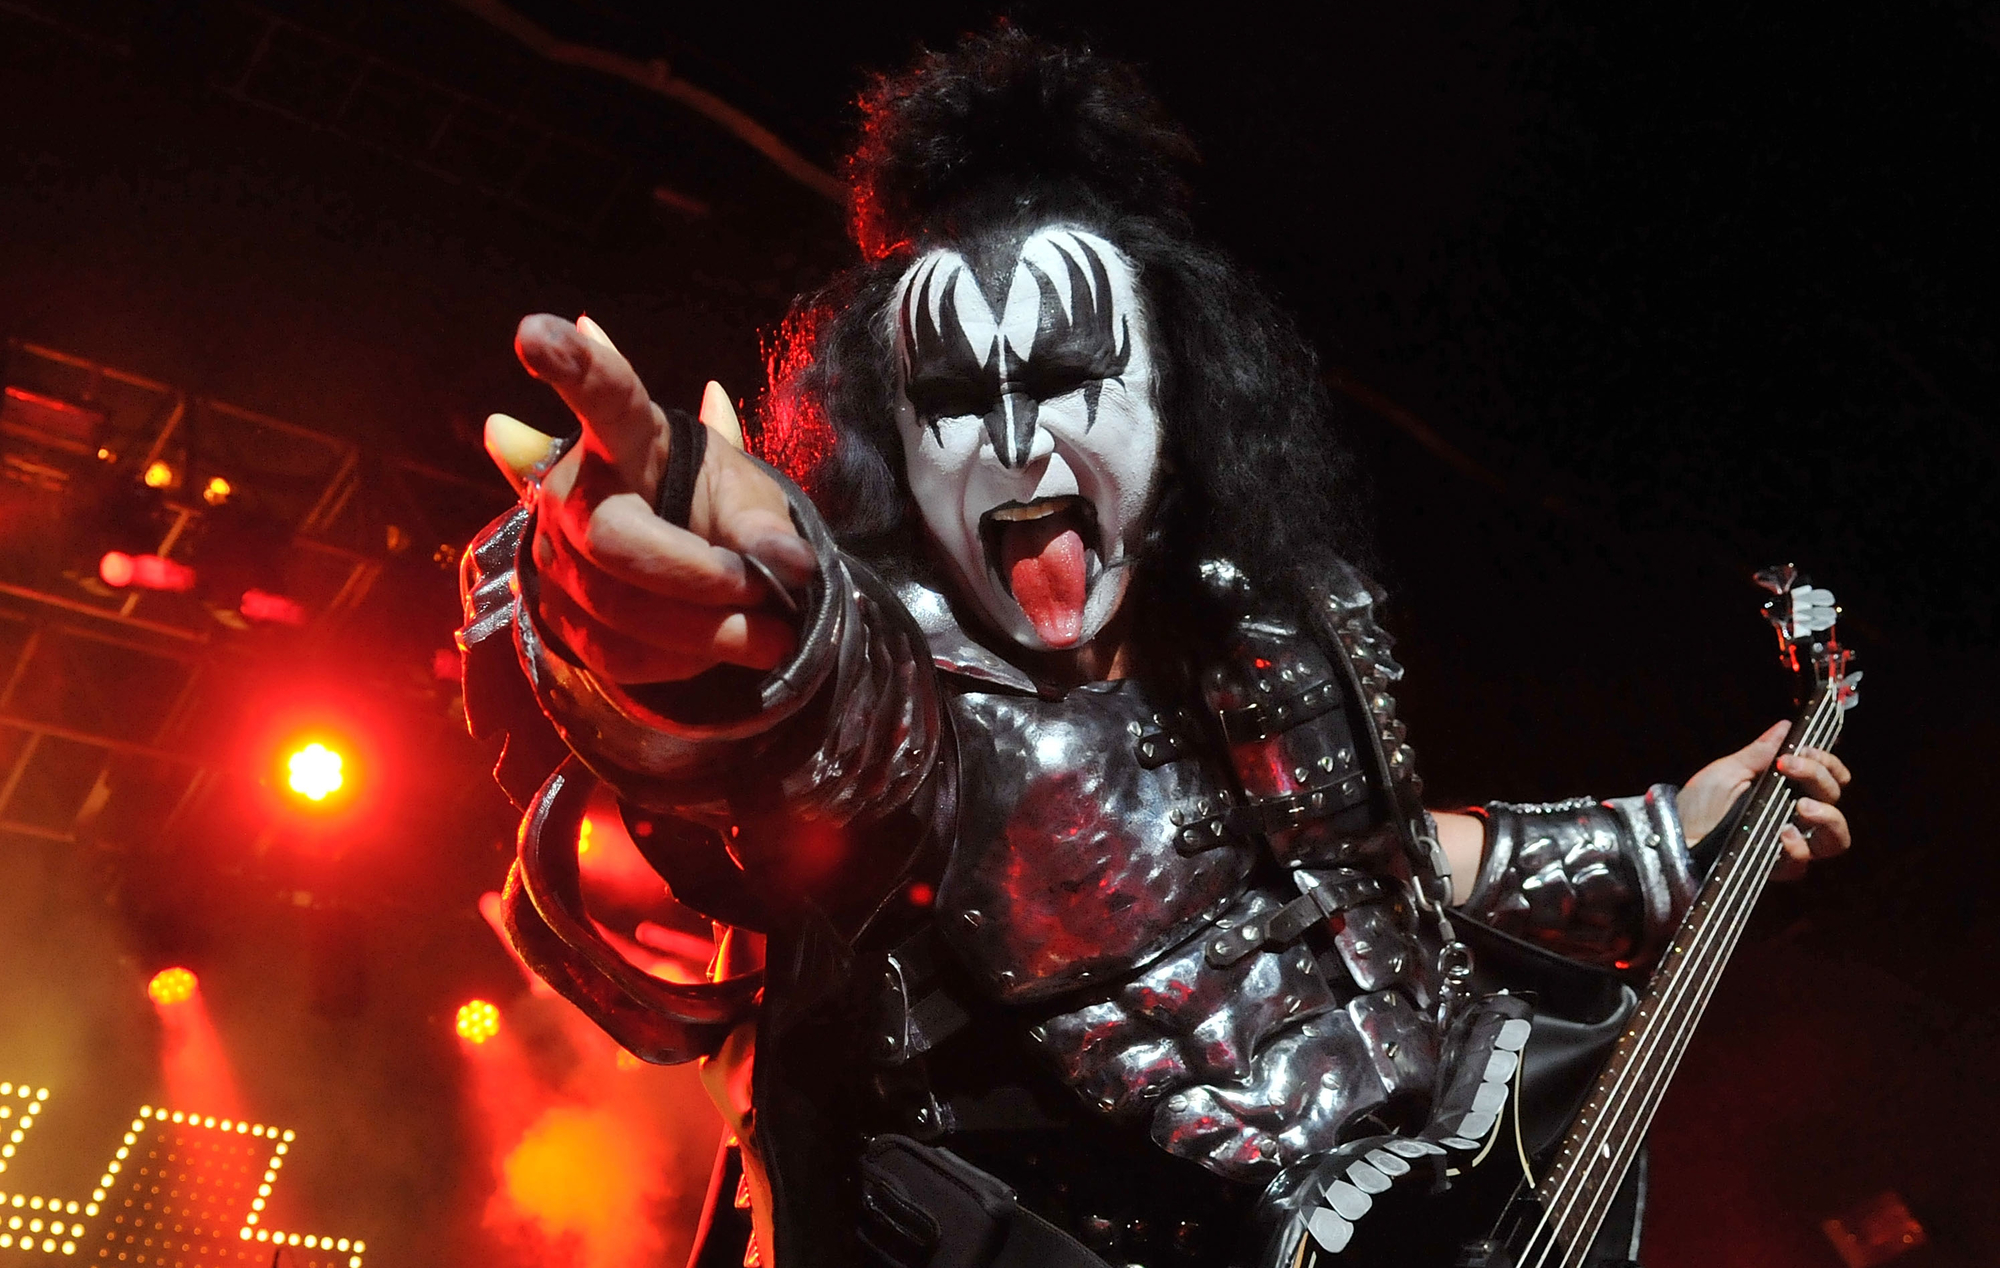 KISS played a show for great white sharks in Australia – but no sharks turned up